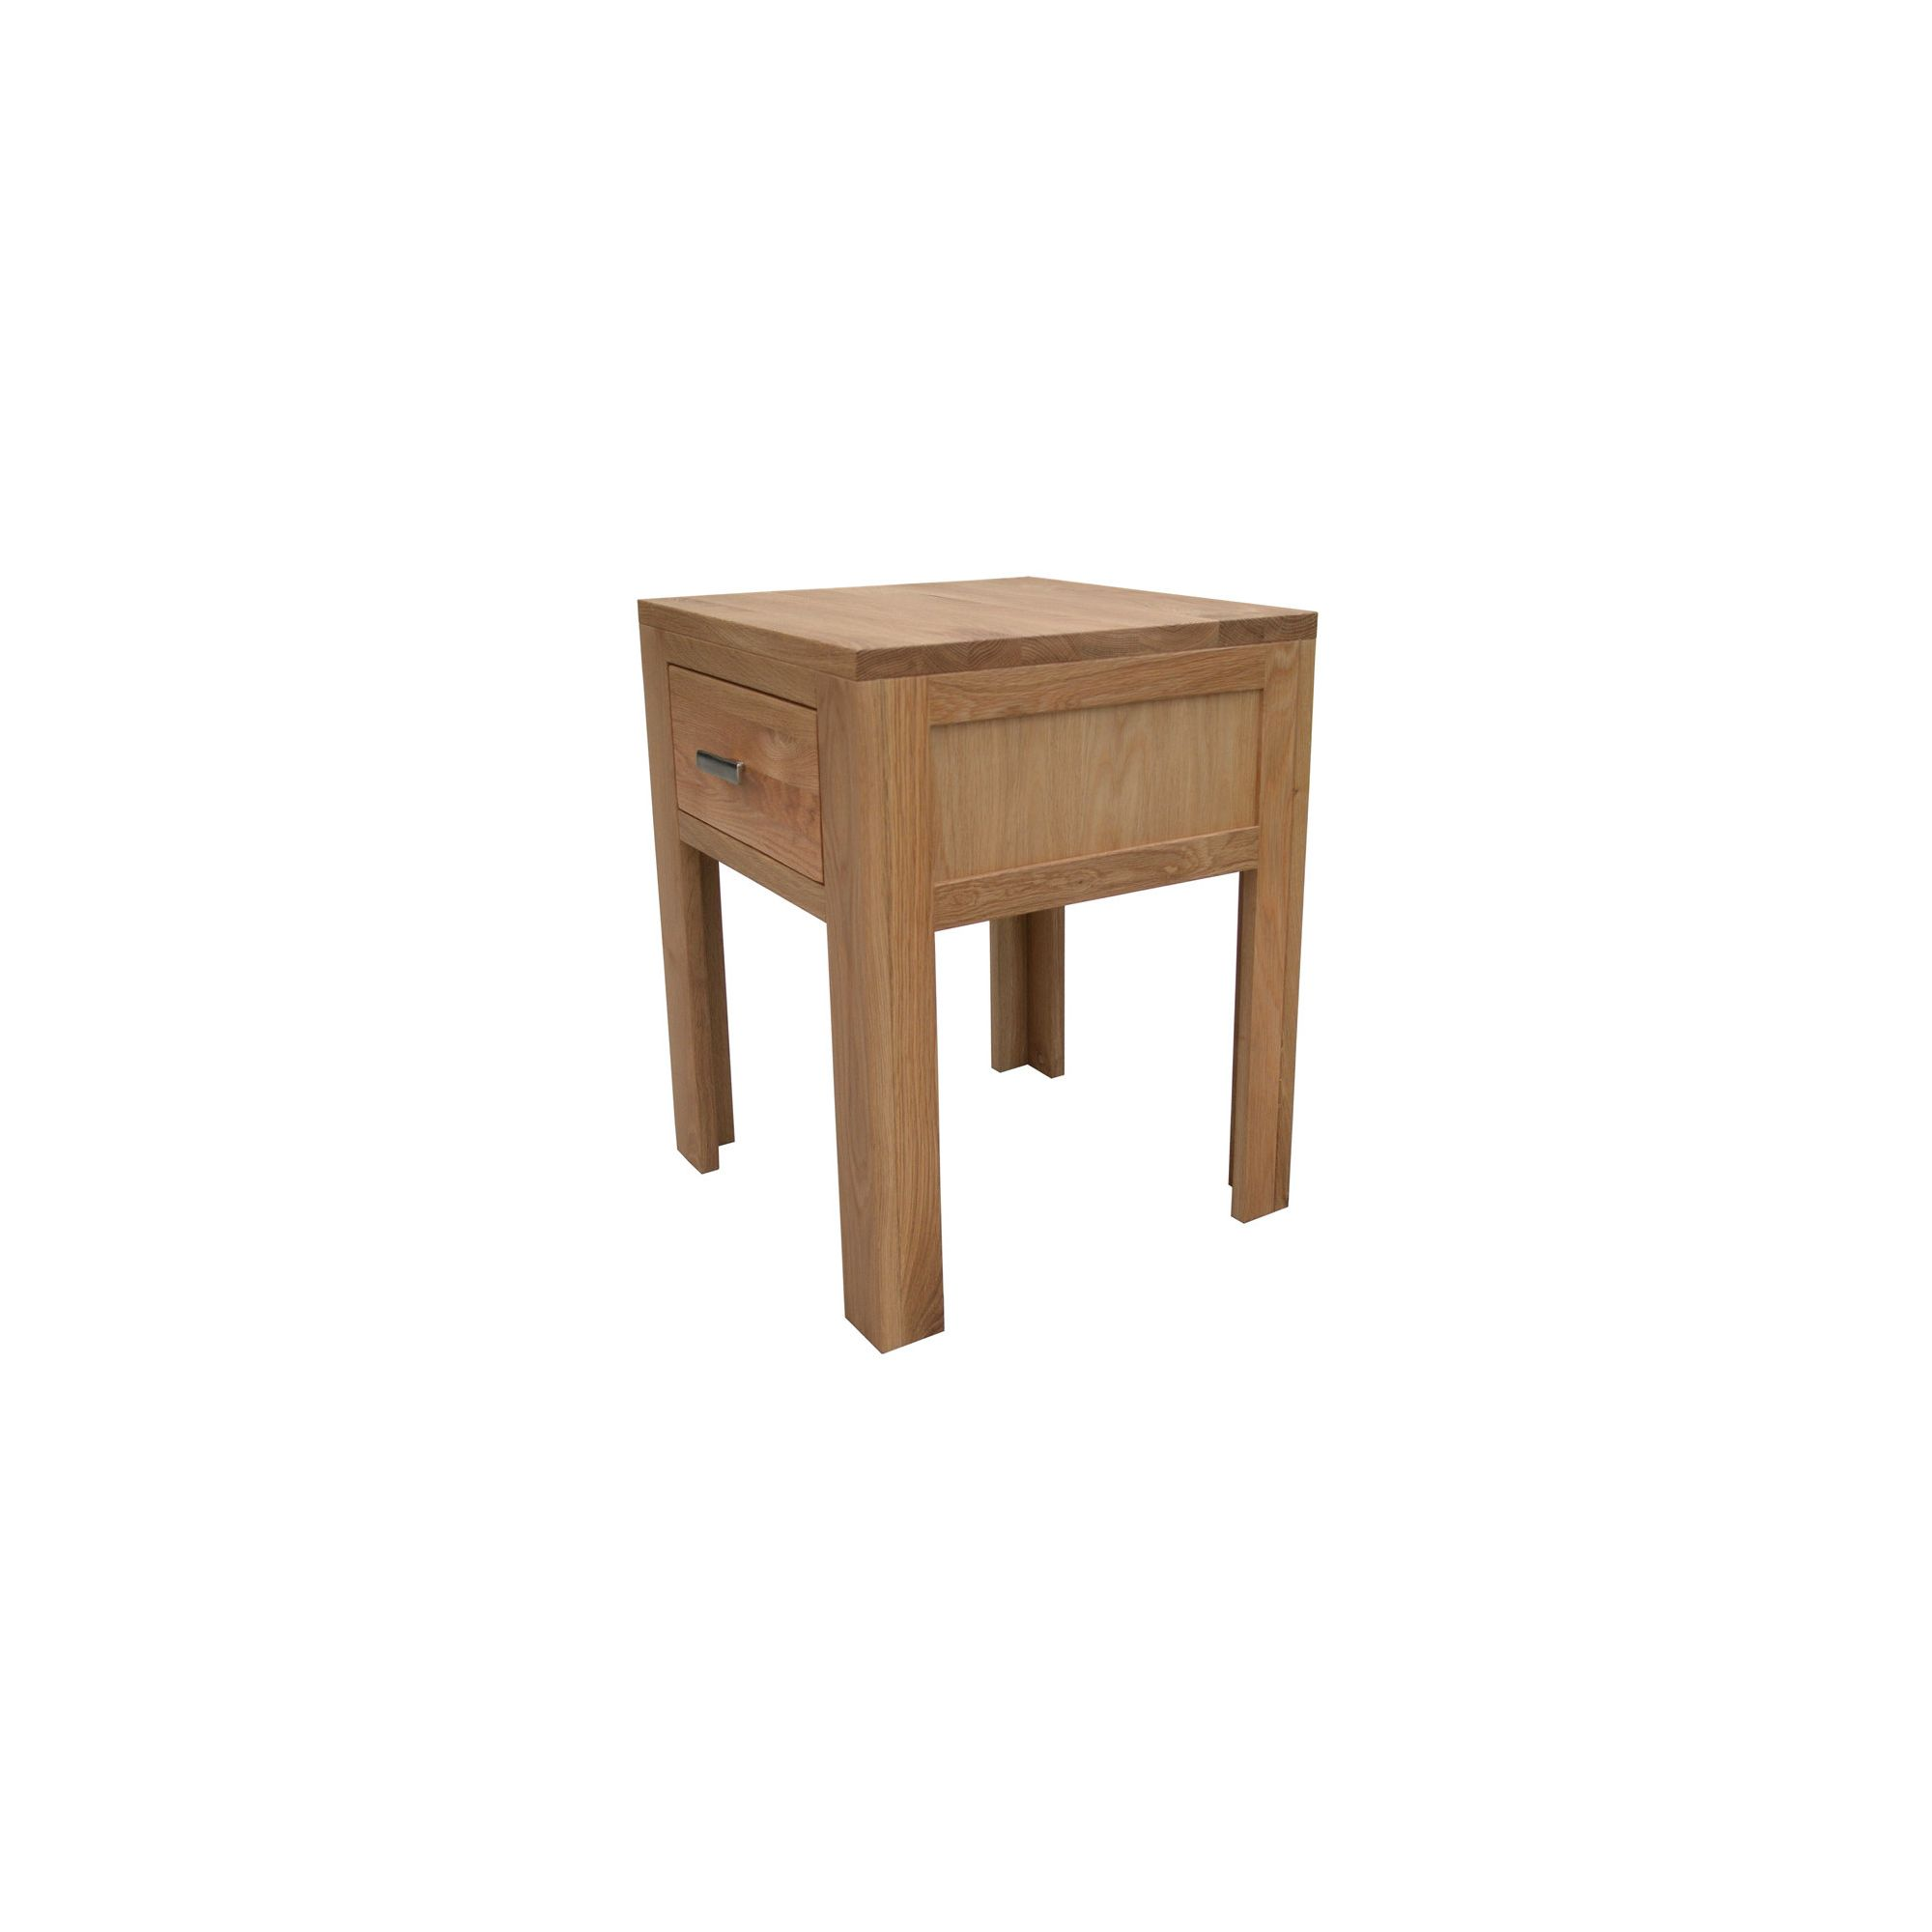 Furniture Rustic Jacobean Oak 1 Drawer Bedside Lamp Table Special Offers